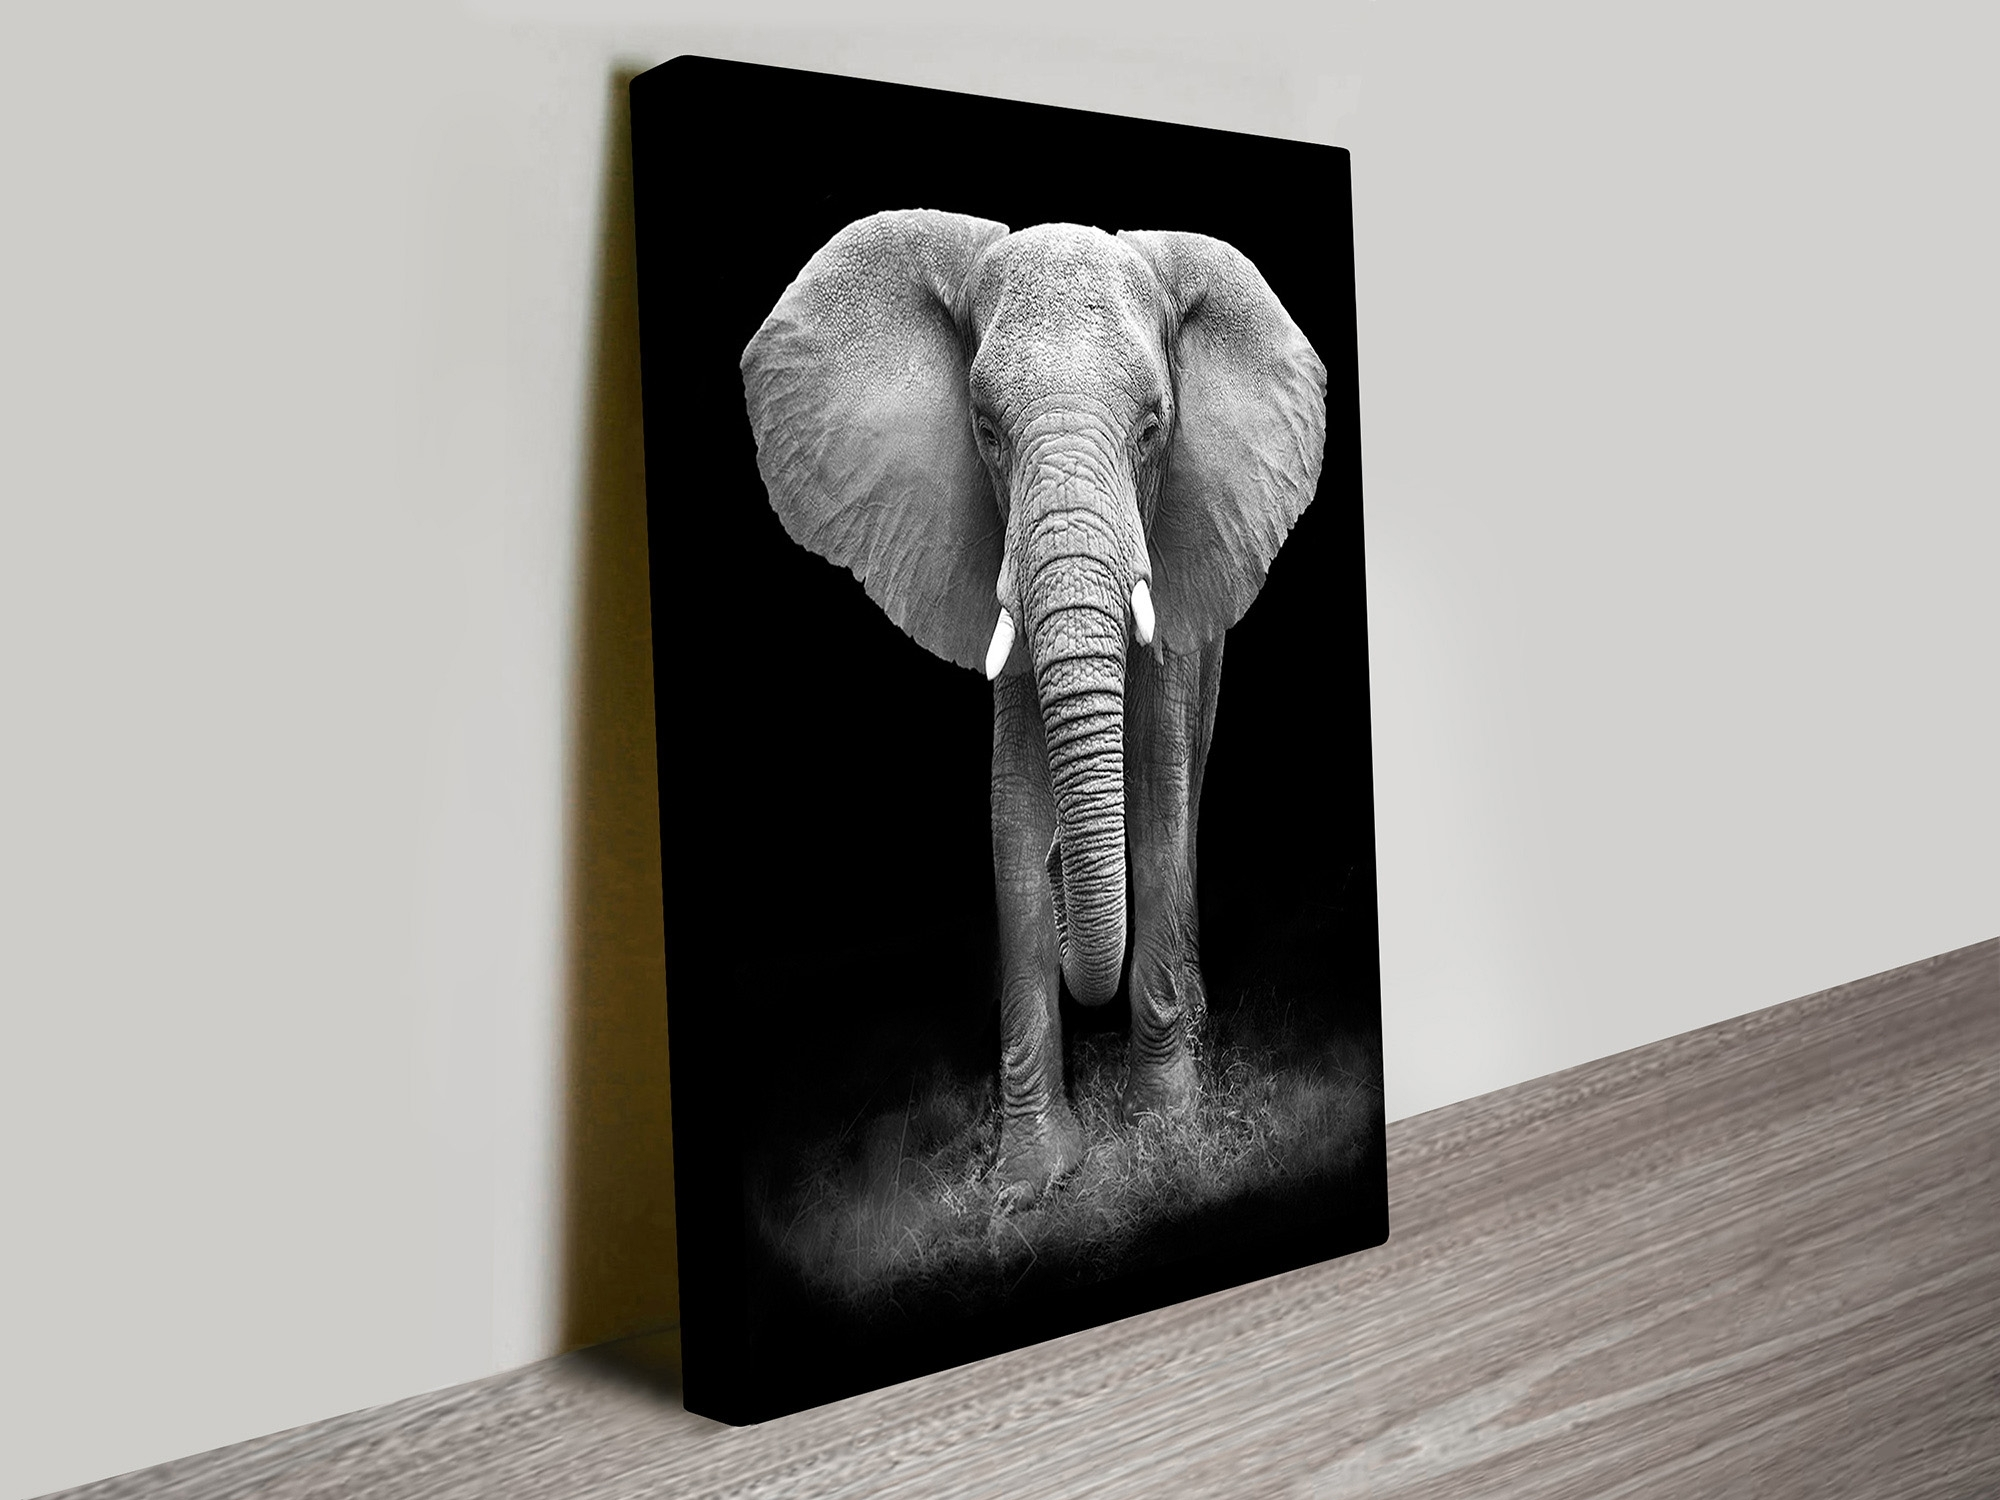 Gentle Giant Elephant Canvas Wall Art – Blue Horizon Prints Within Most Current Elephant Canvas Wall Art (View 12 of 20)